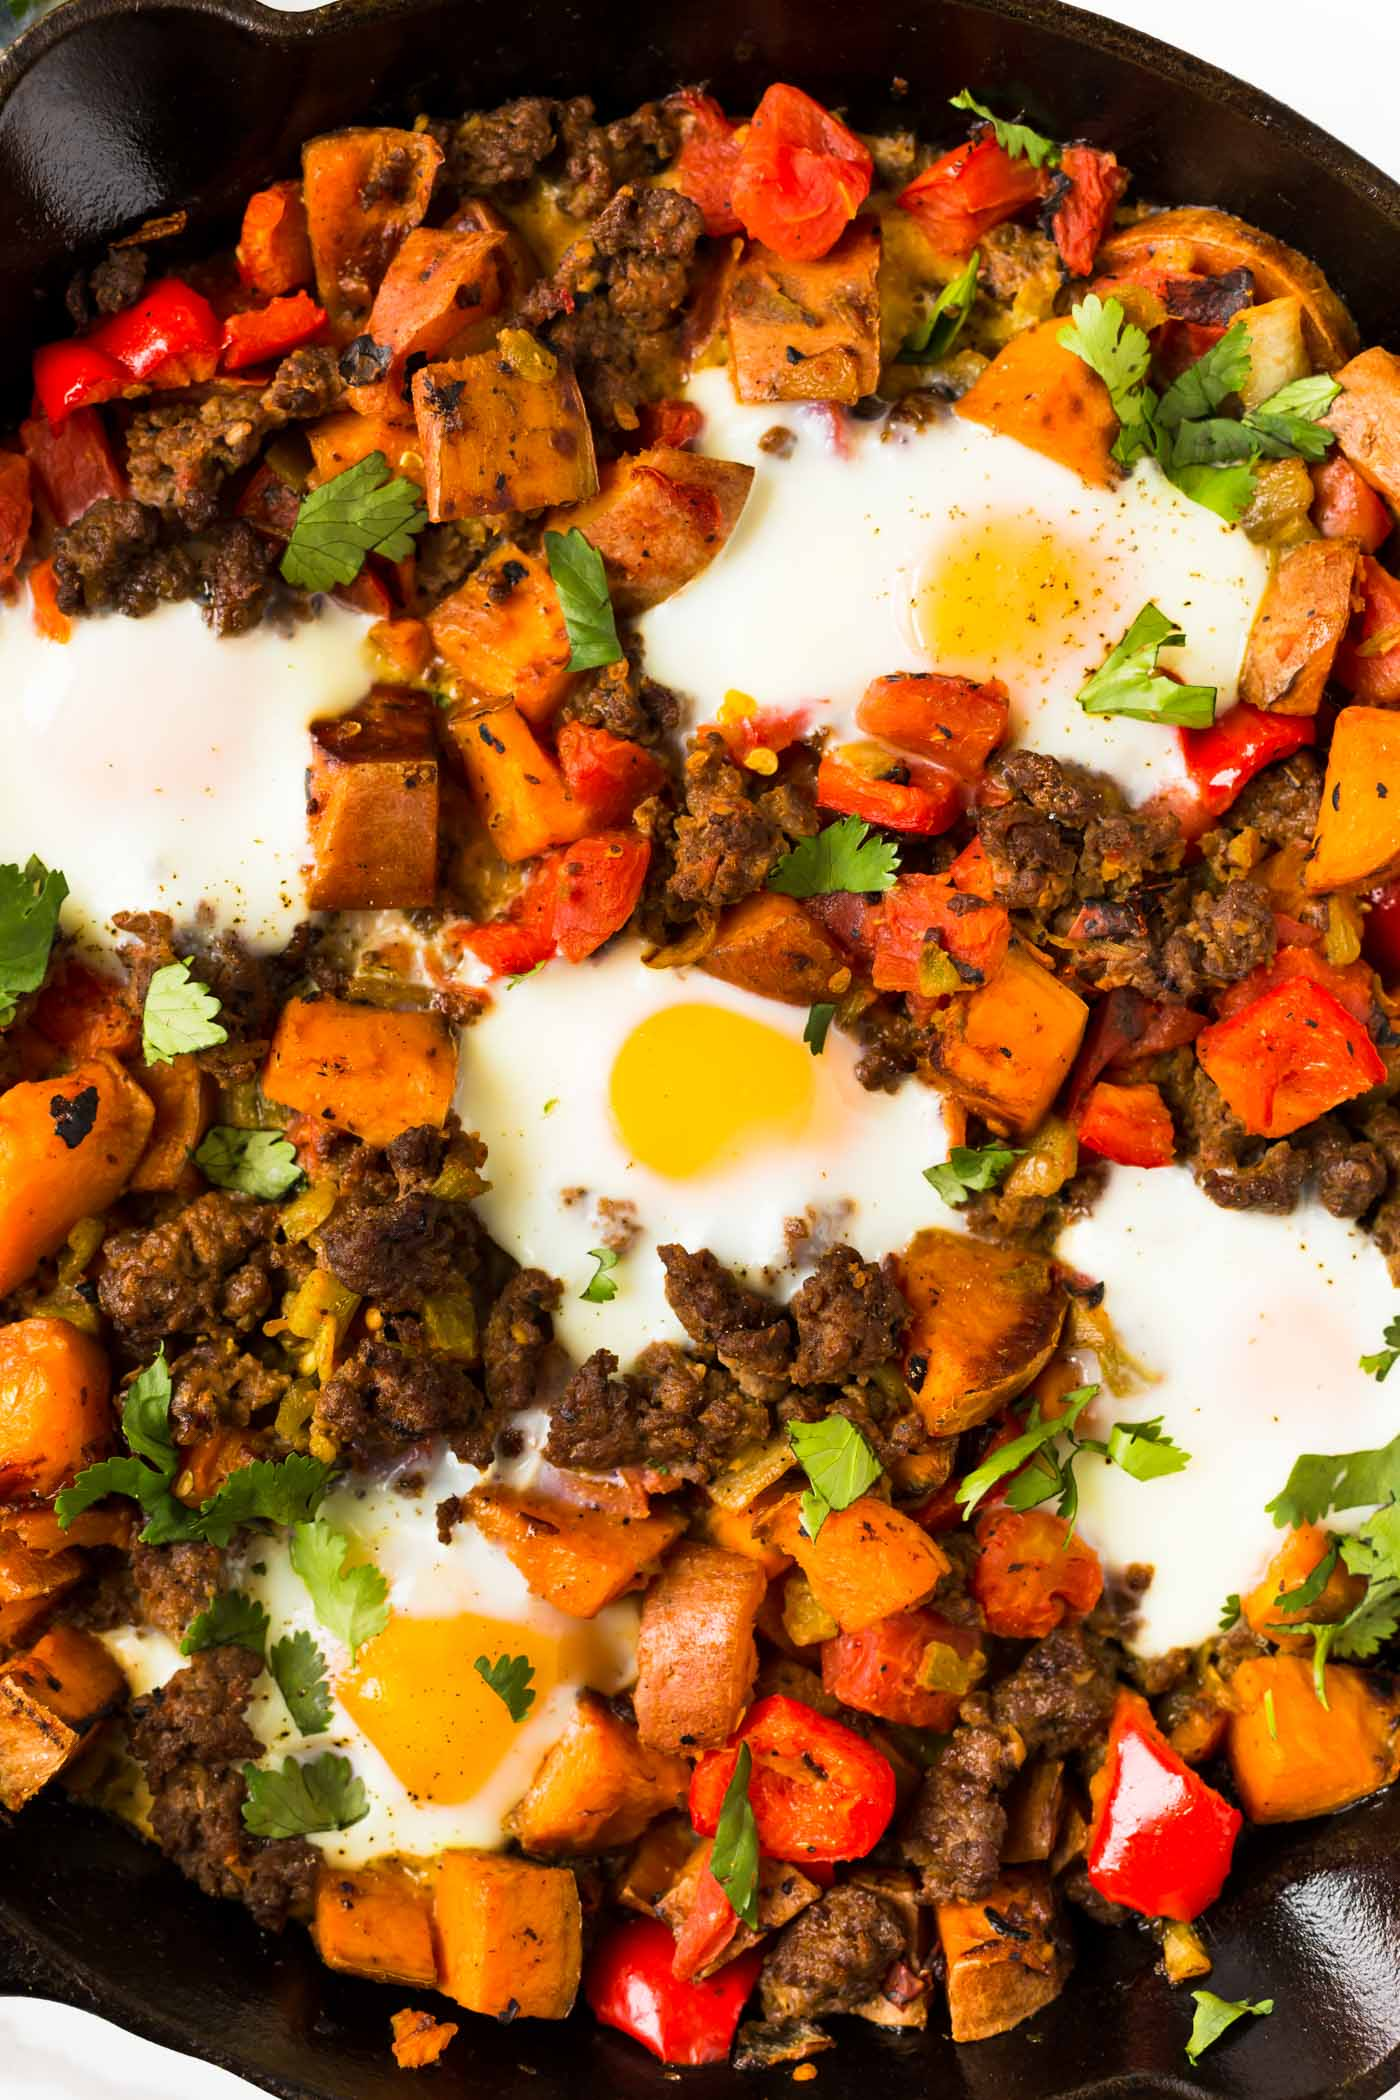 Sweet Potato Breakfast Hash with Sweet potato, sausage, eggs, bell pepper, diced tomatoes, diced green chiles and garnished with cilantro in cast iron skillet